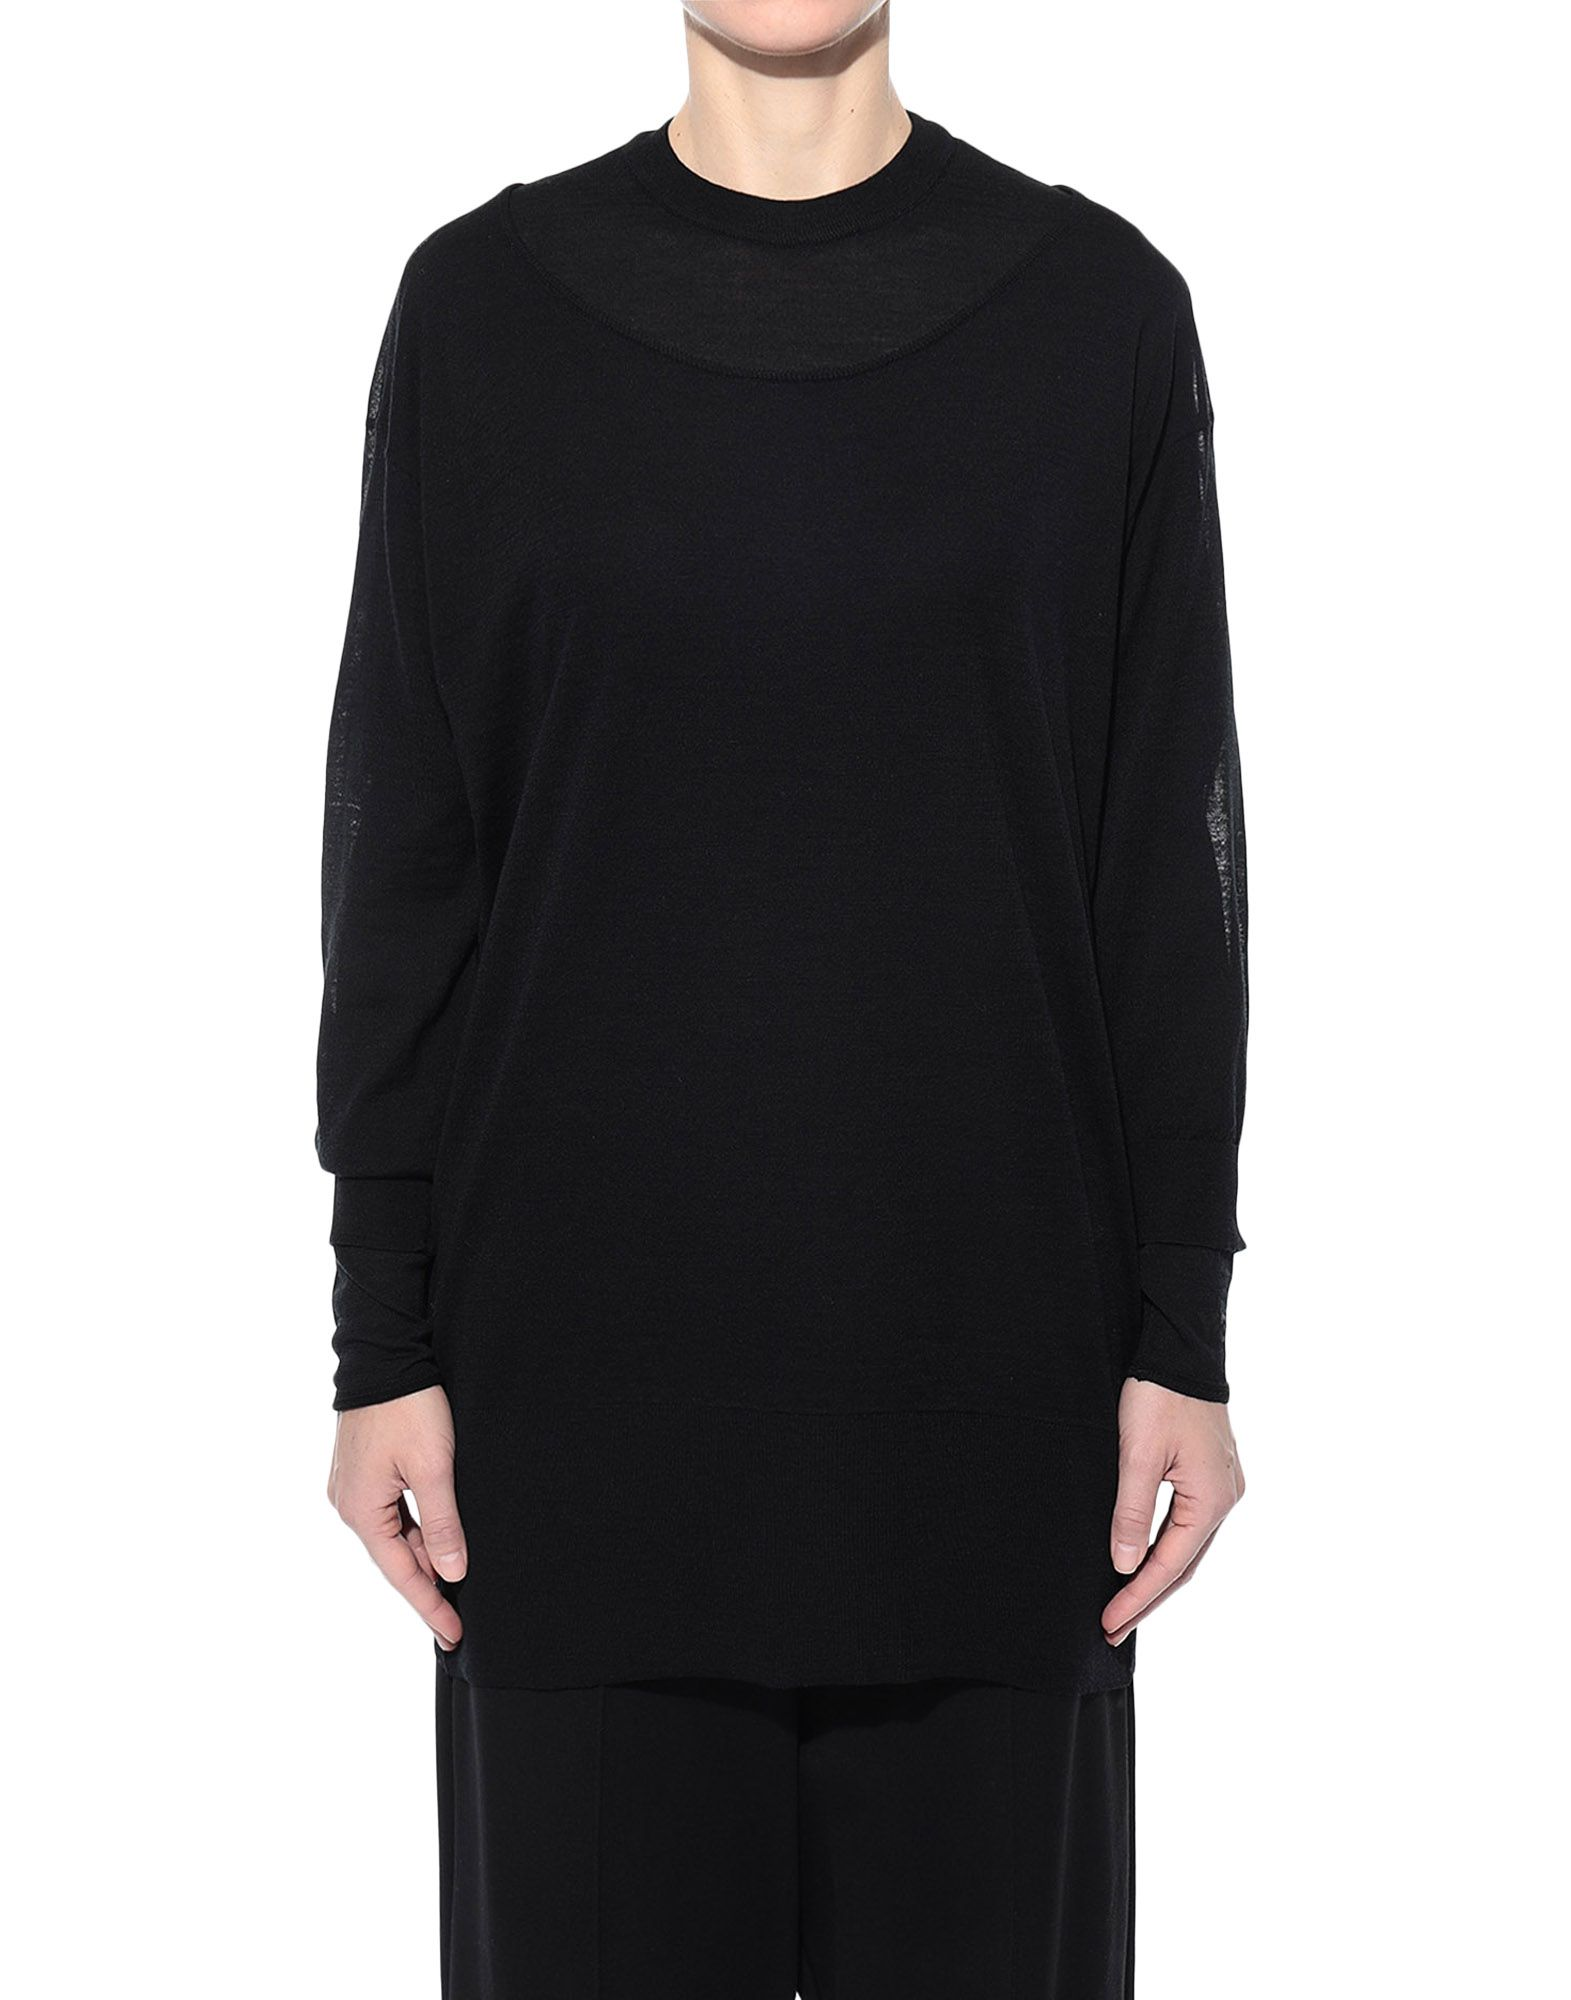 Y-3 Y-3 Layered Knitted Long Sweater Long sleeve sweater Woman r